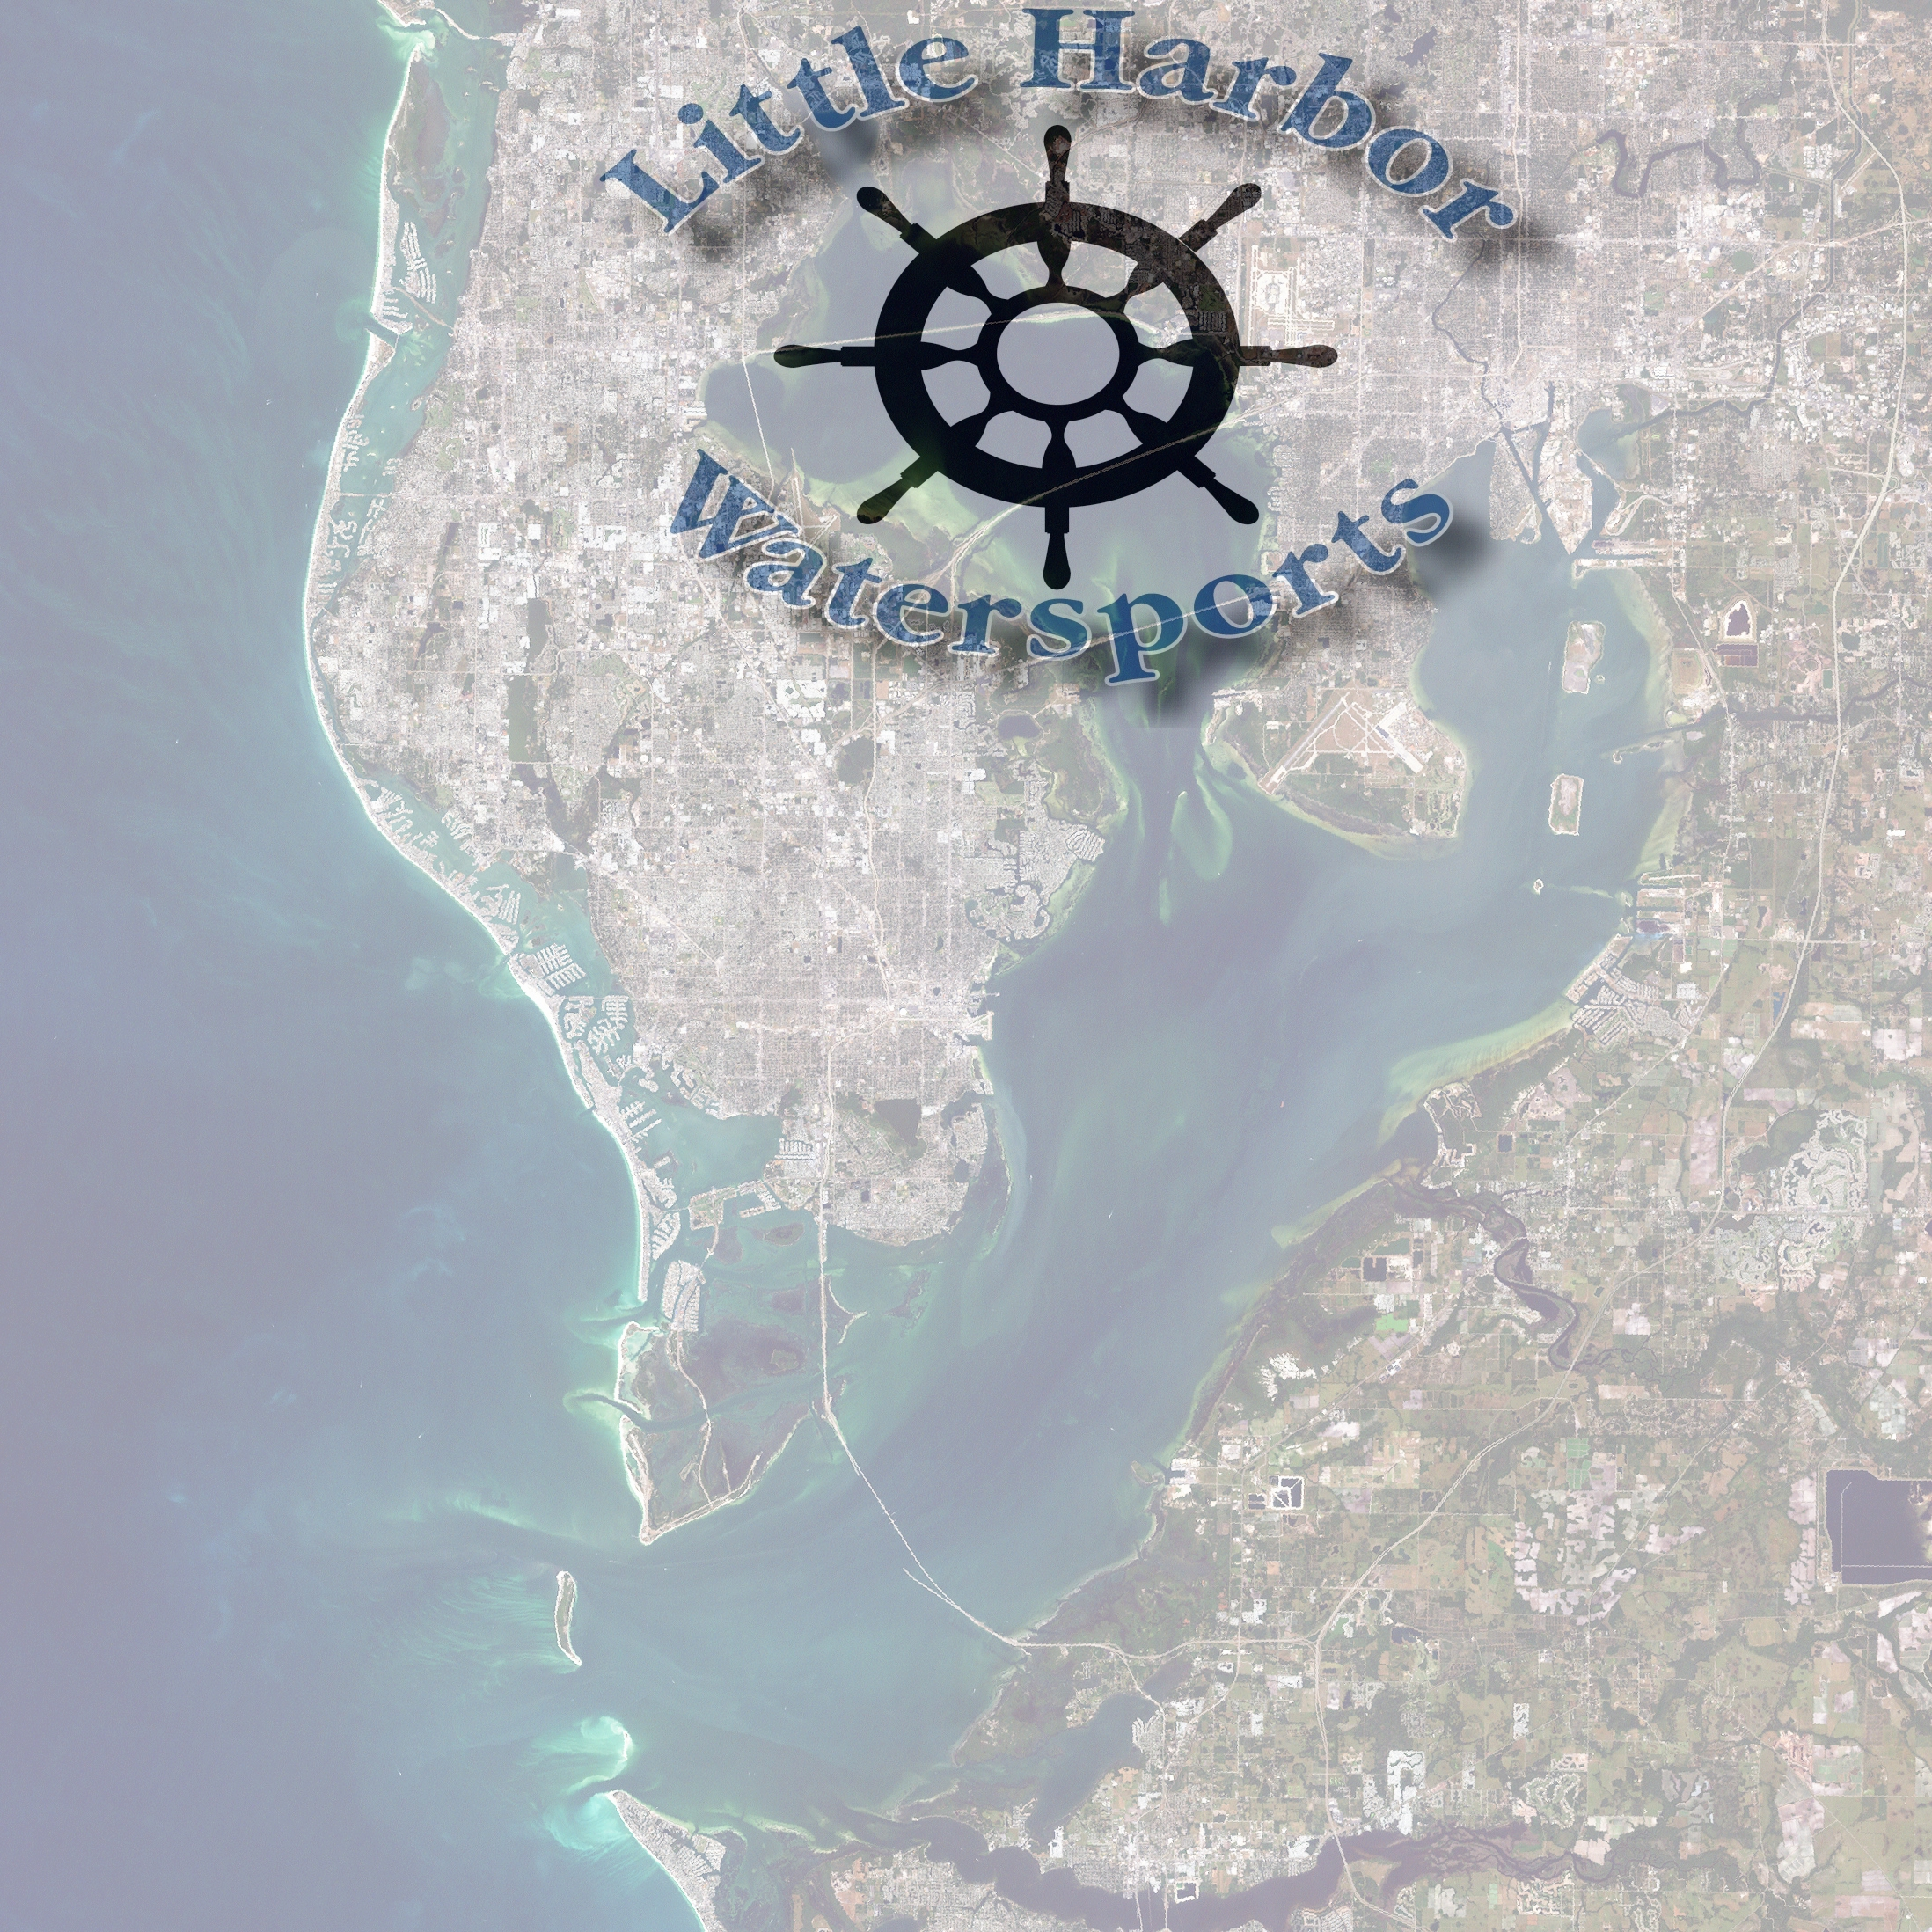 Little-harbor-logo3